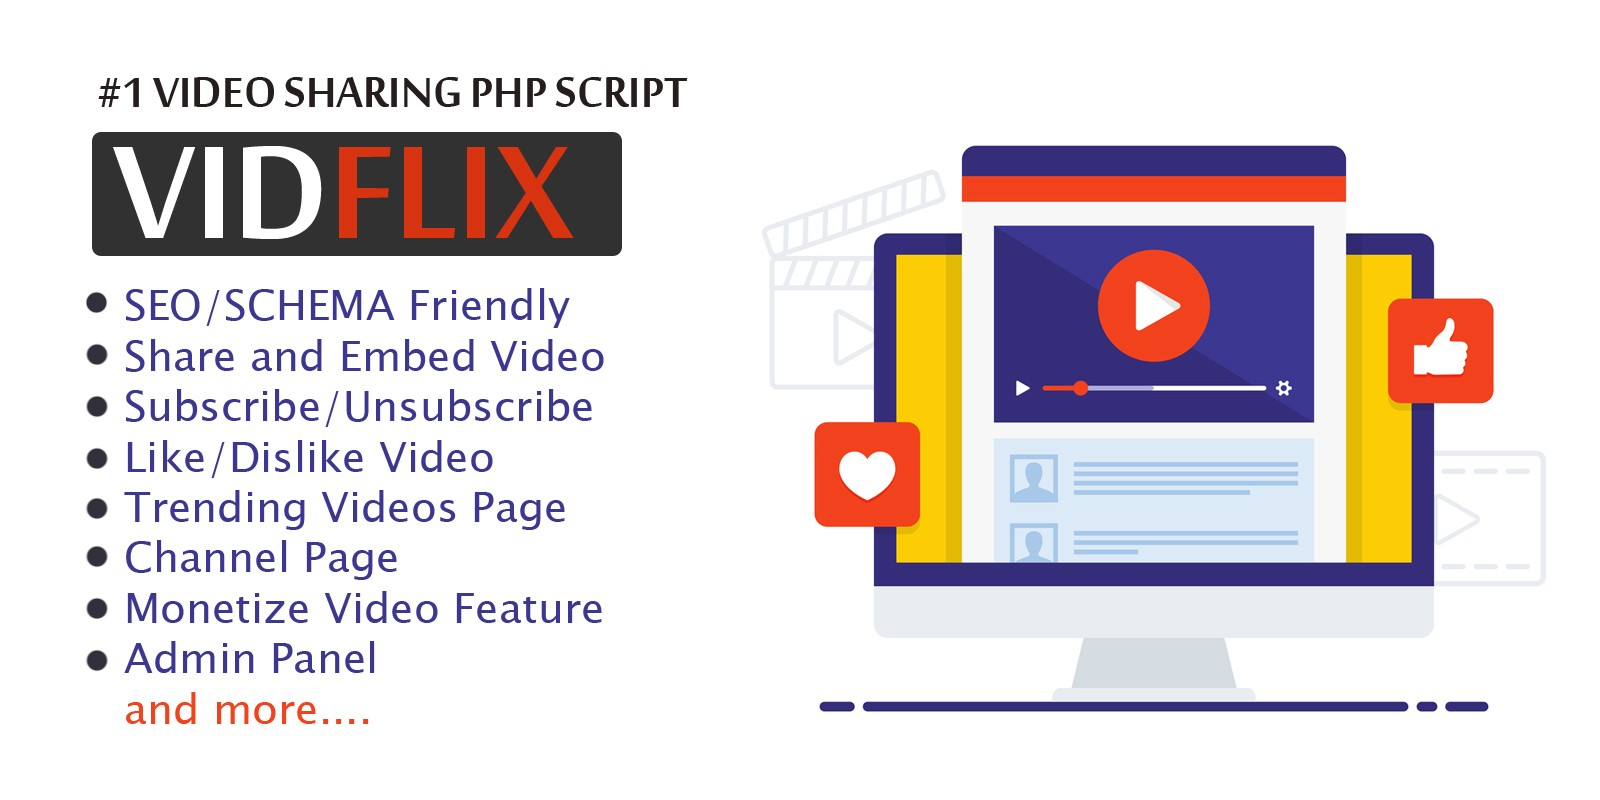 Vidflix - Video Sharing Platform PHP